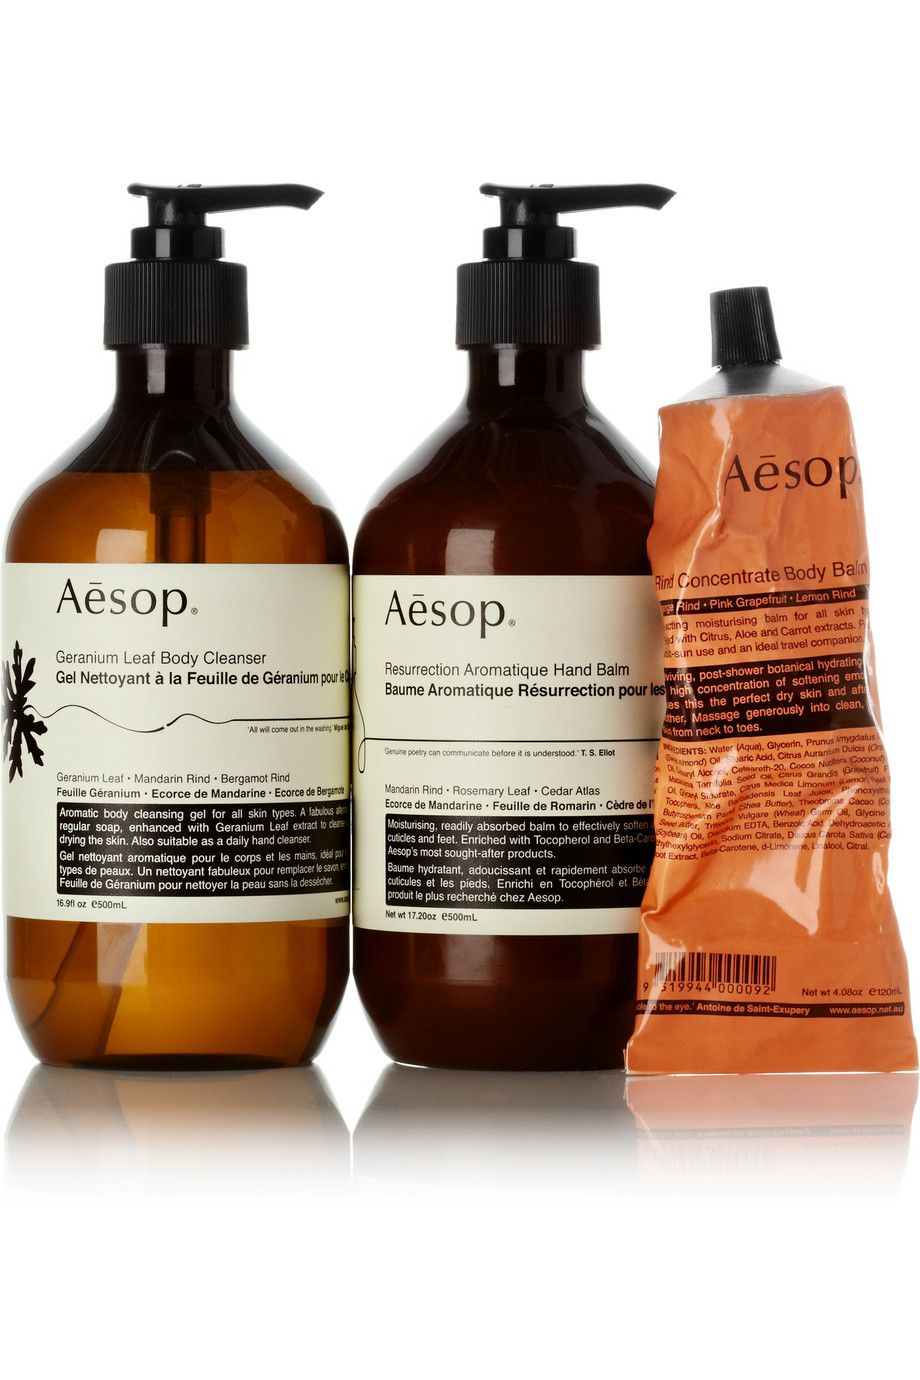 Aesop their packaging is beautiful, the bottles are Eco